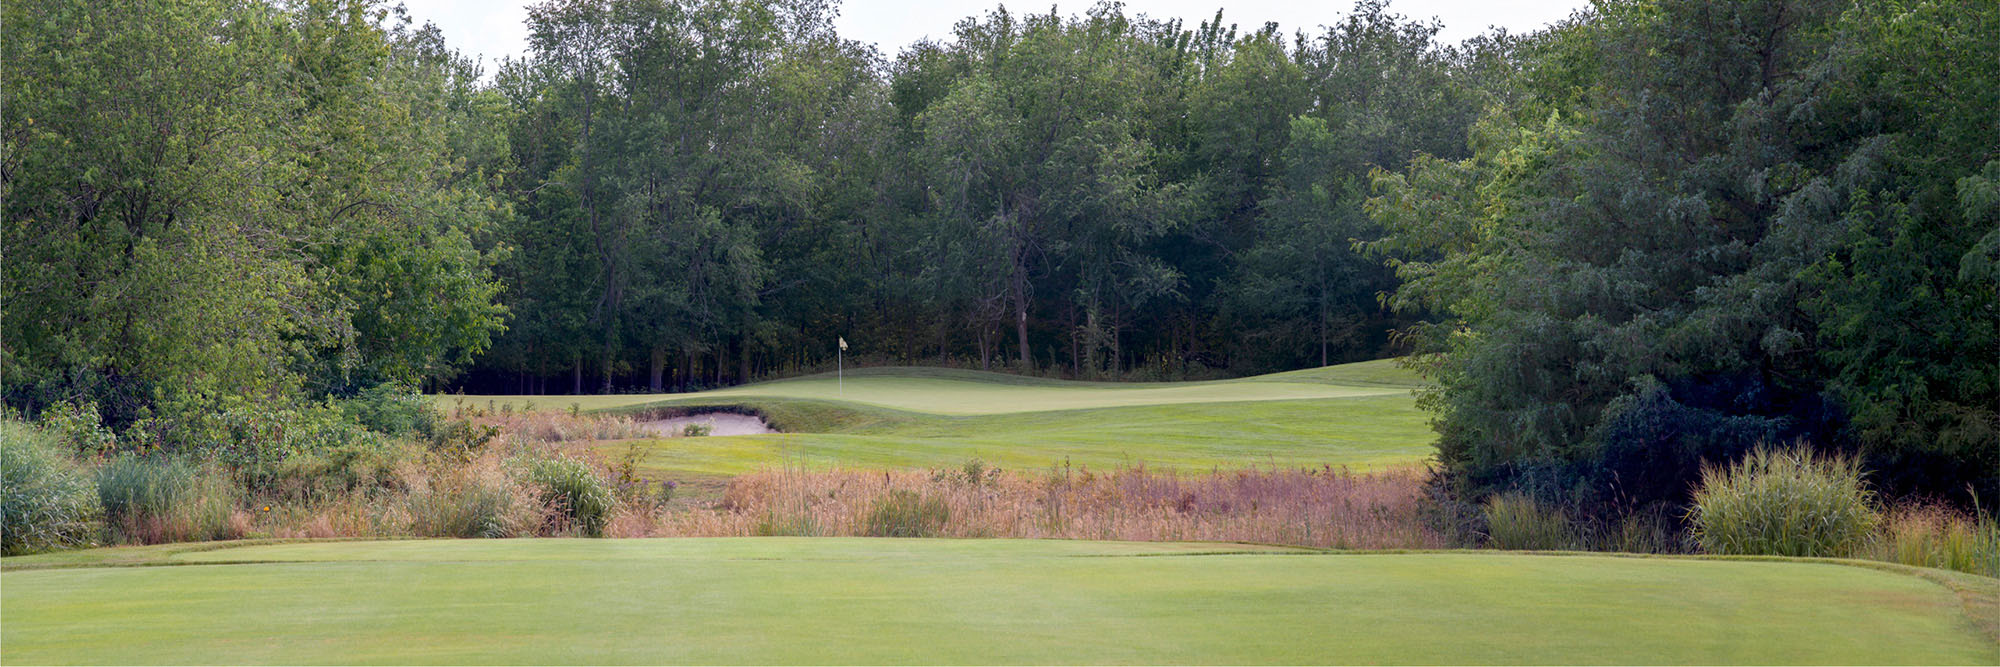 Golf Course Image - Flint Hills National Golf Club No. 8